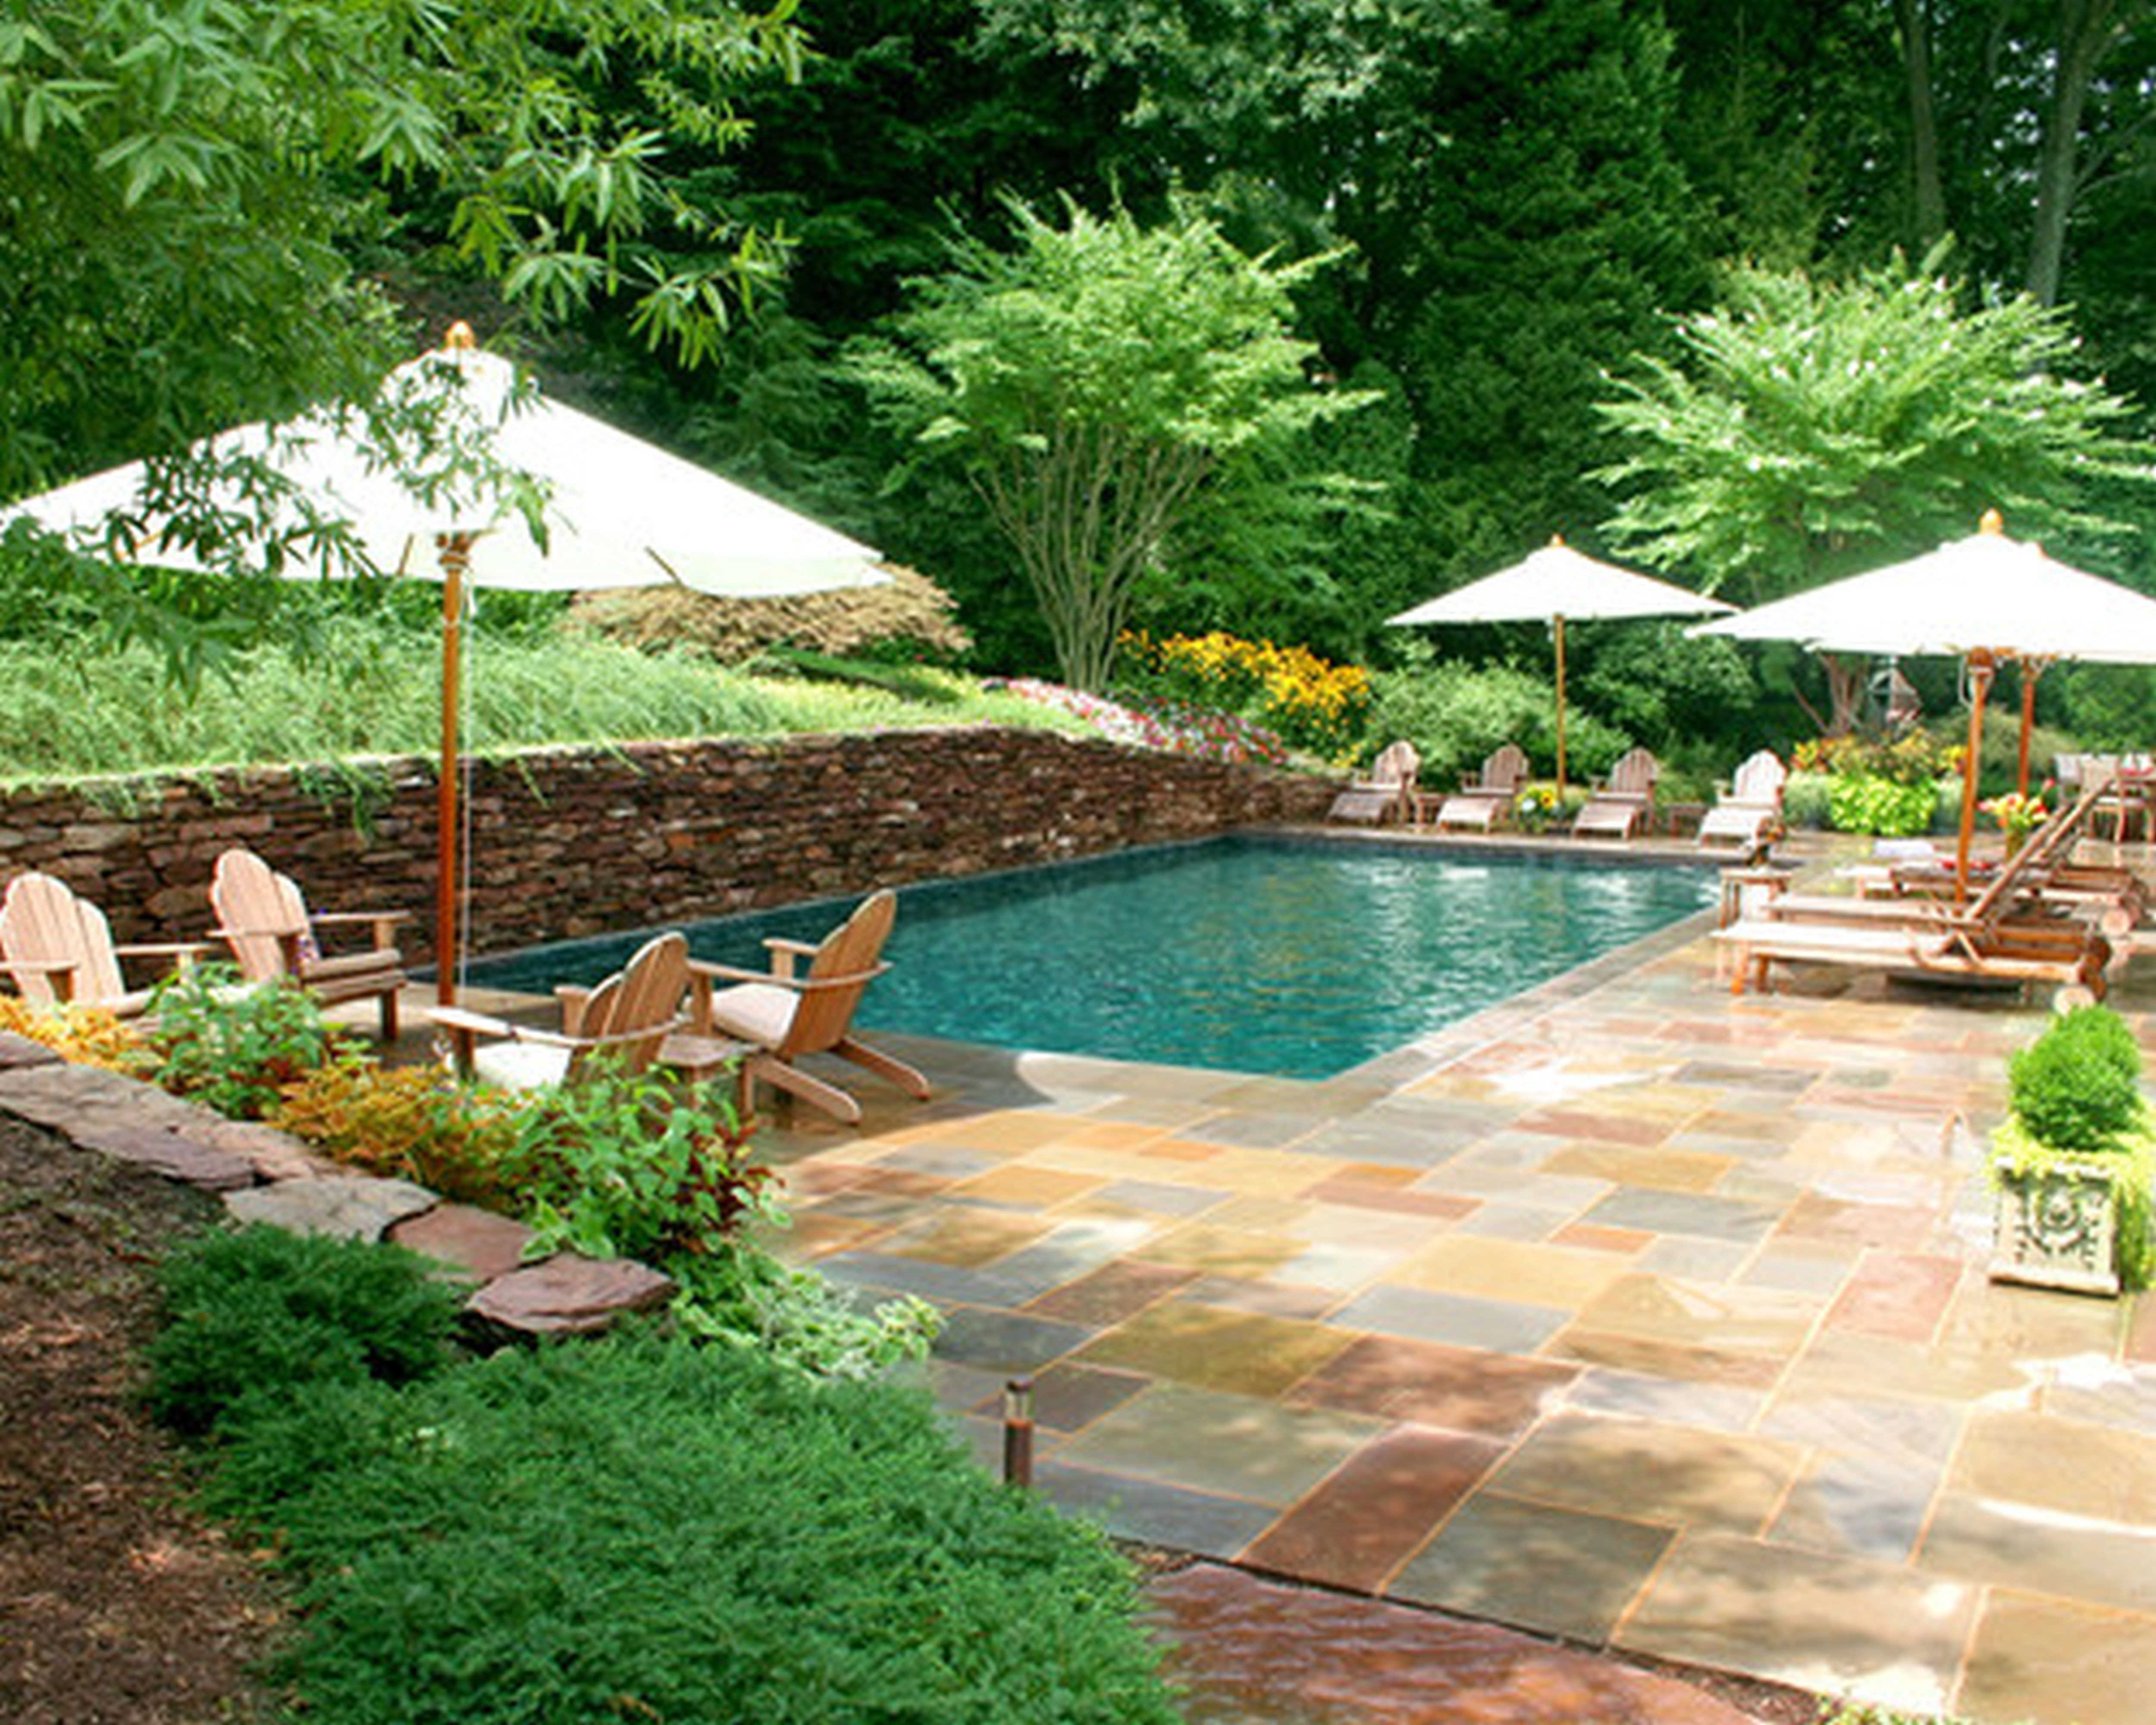 Best ideas about Pool Landscape Ideas . Save or Pin Designing Your Backyard Swimming Pool Part I of II Now.